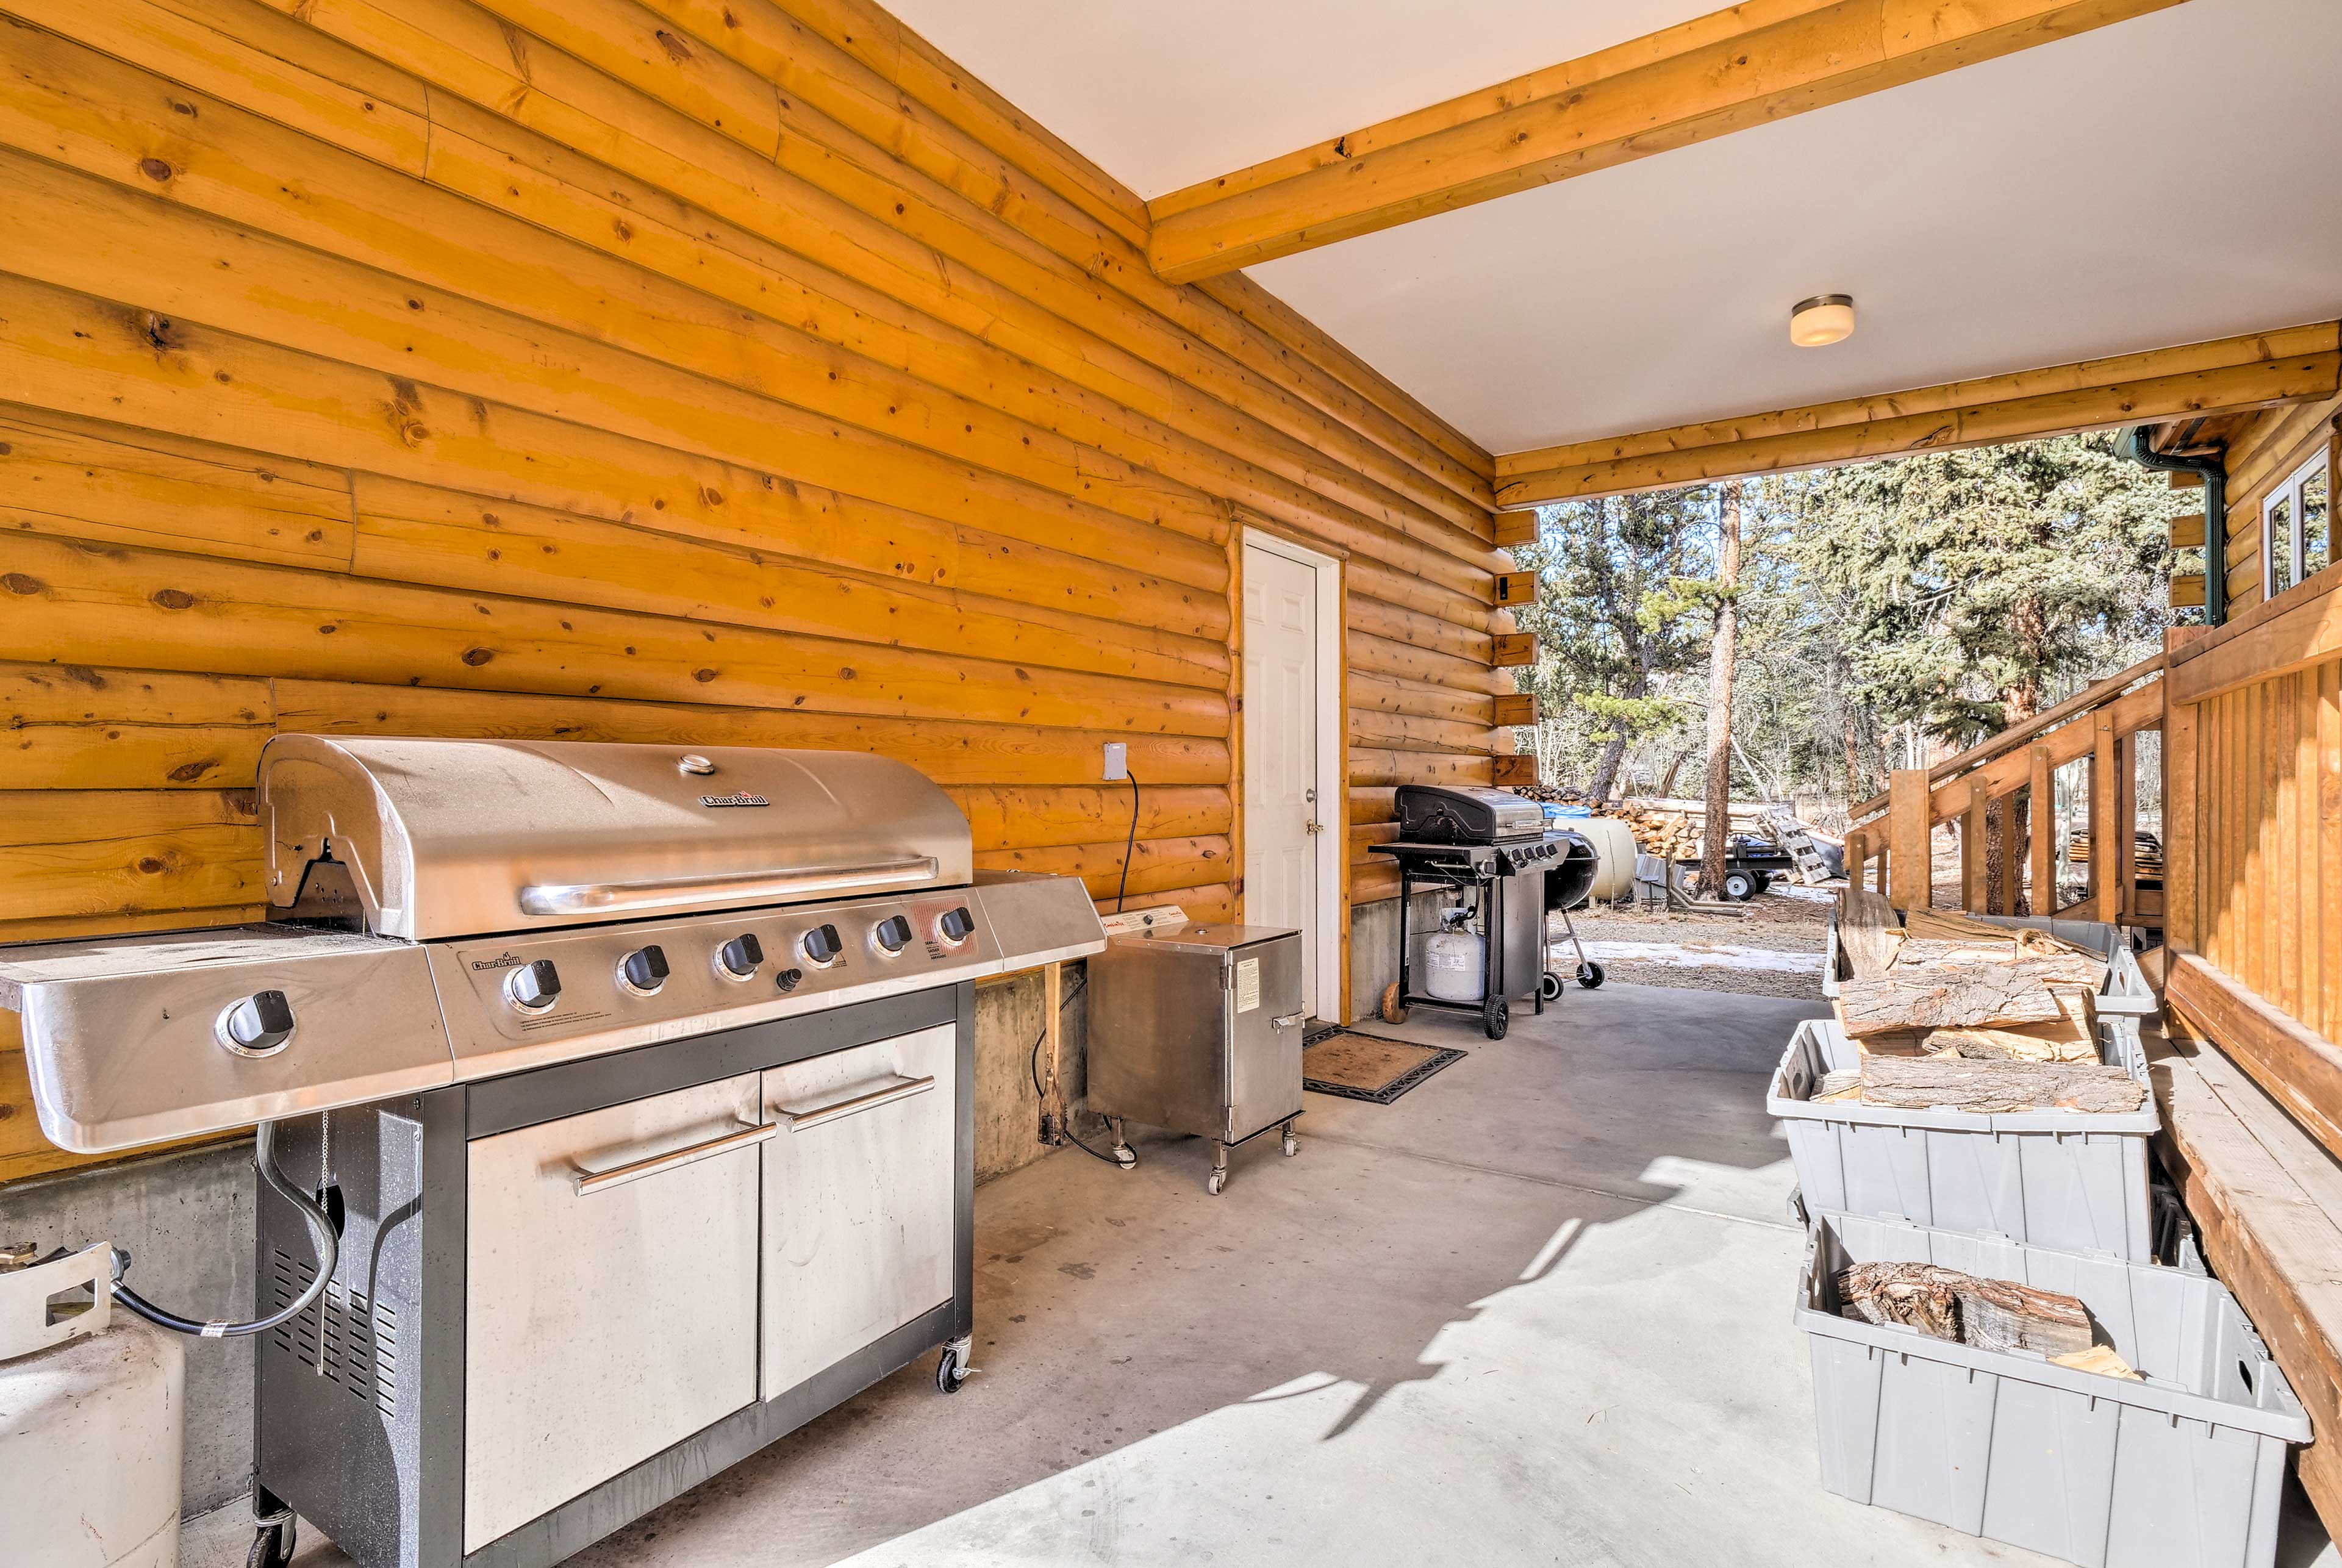 Utilize the gas grill for a good old-fashioned cookout!